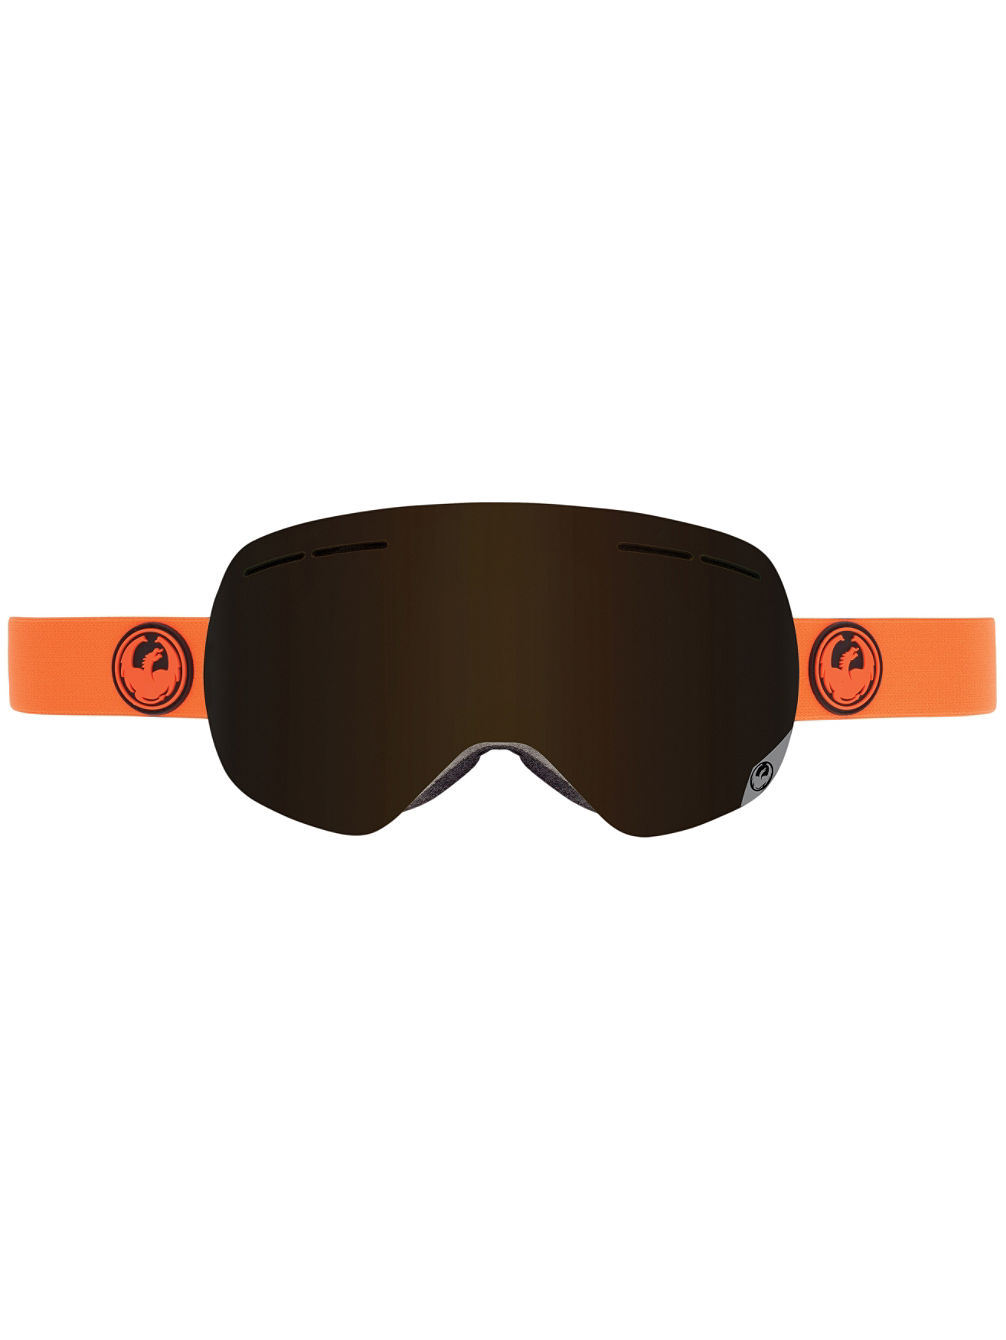 X1S safety M Goggle